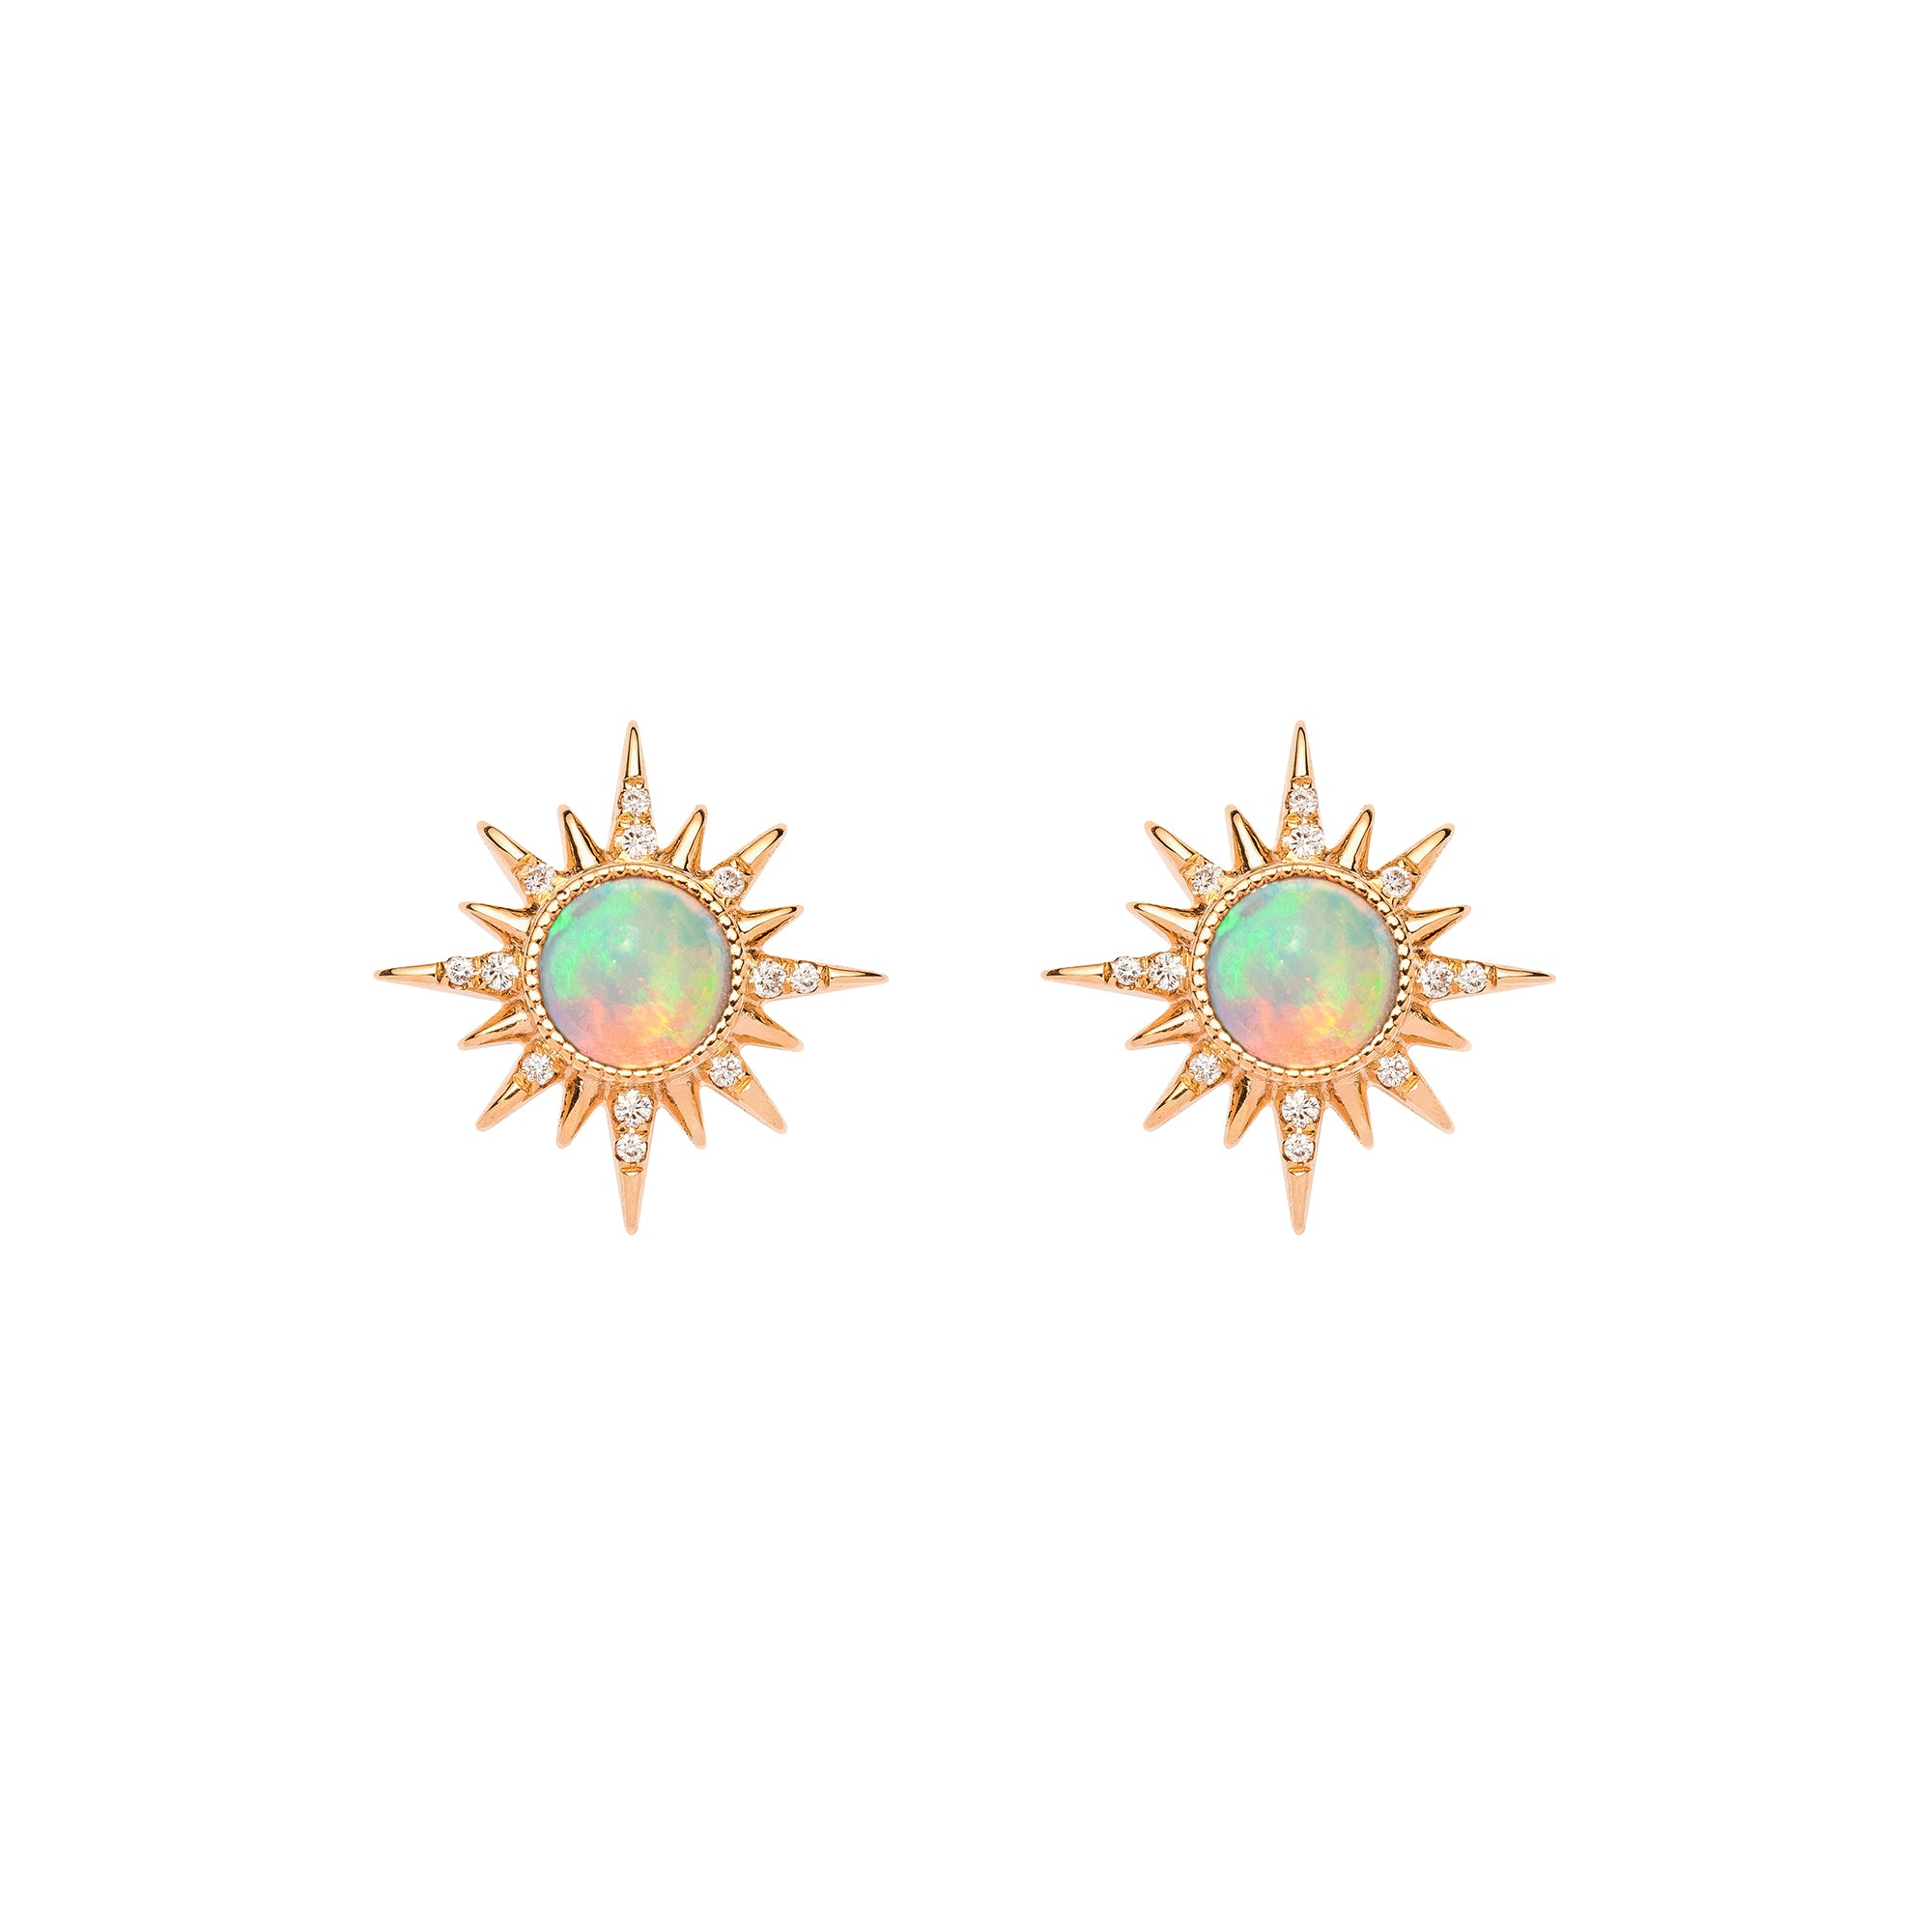 Opal Electra Earrings by Jenny Dee for Broken English Jewelry